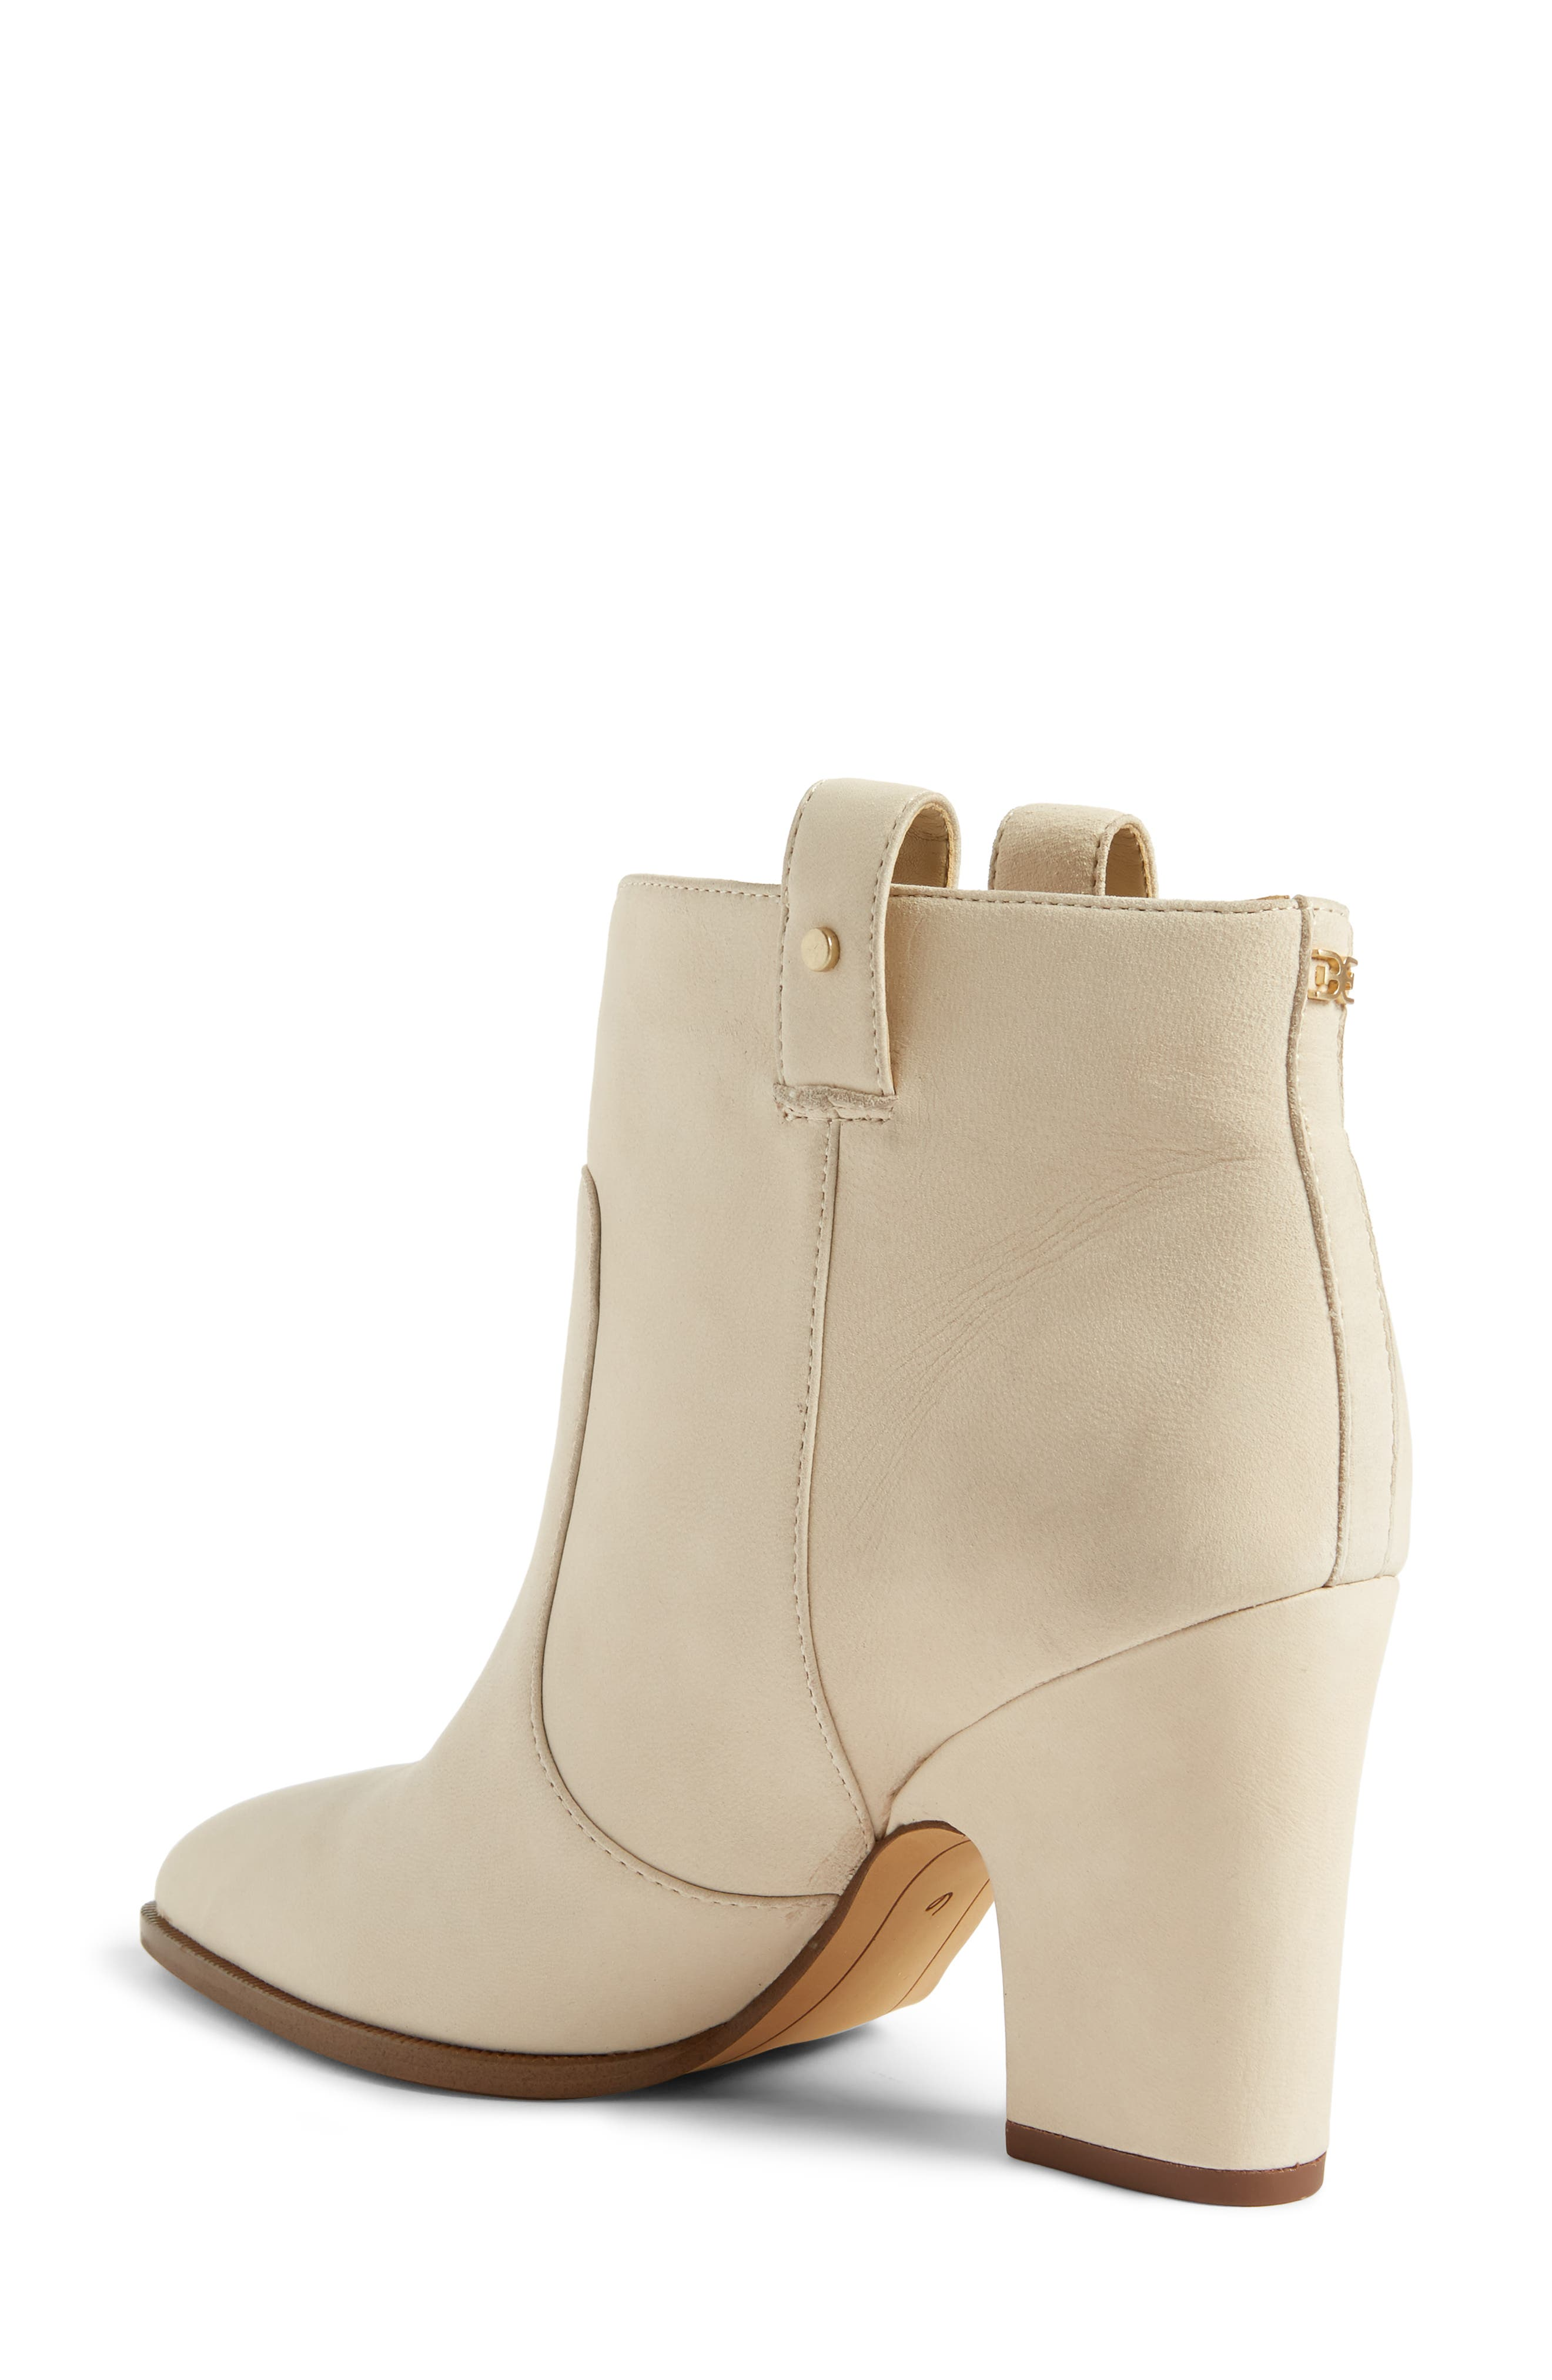 SAM EDELMAN,                             Niomi Bootie,                             Alternate thumbnail 2, color,                             900